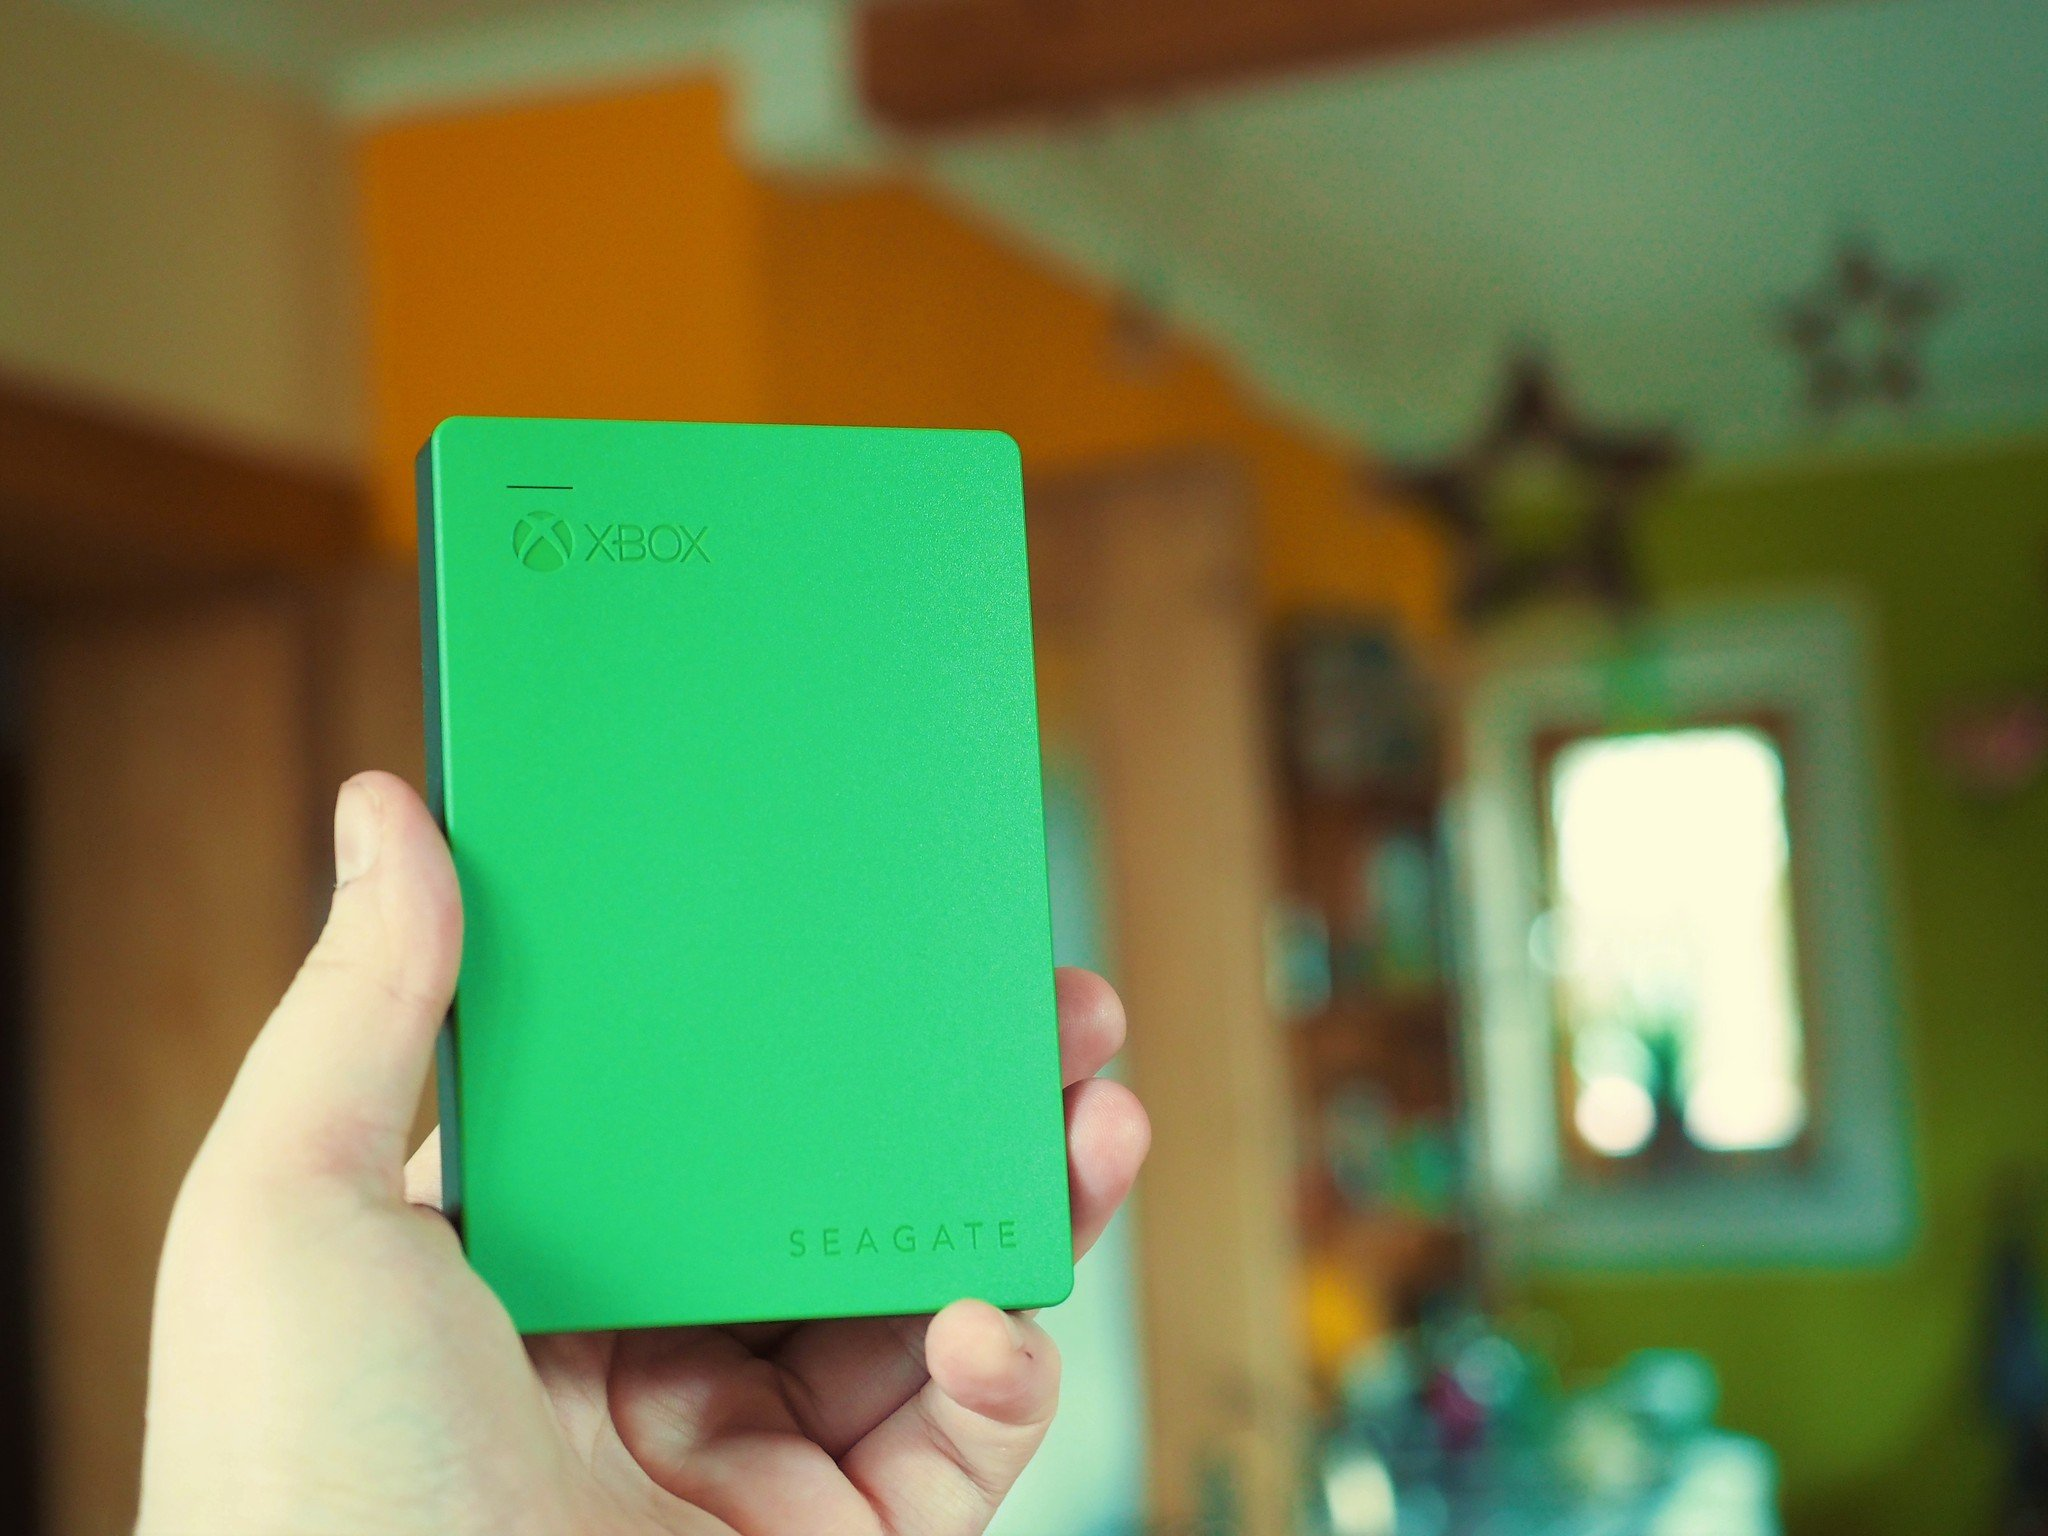 Seagate Game Drive Xbox One 2TB Hard Drive Review Windows Central